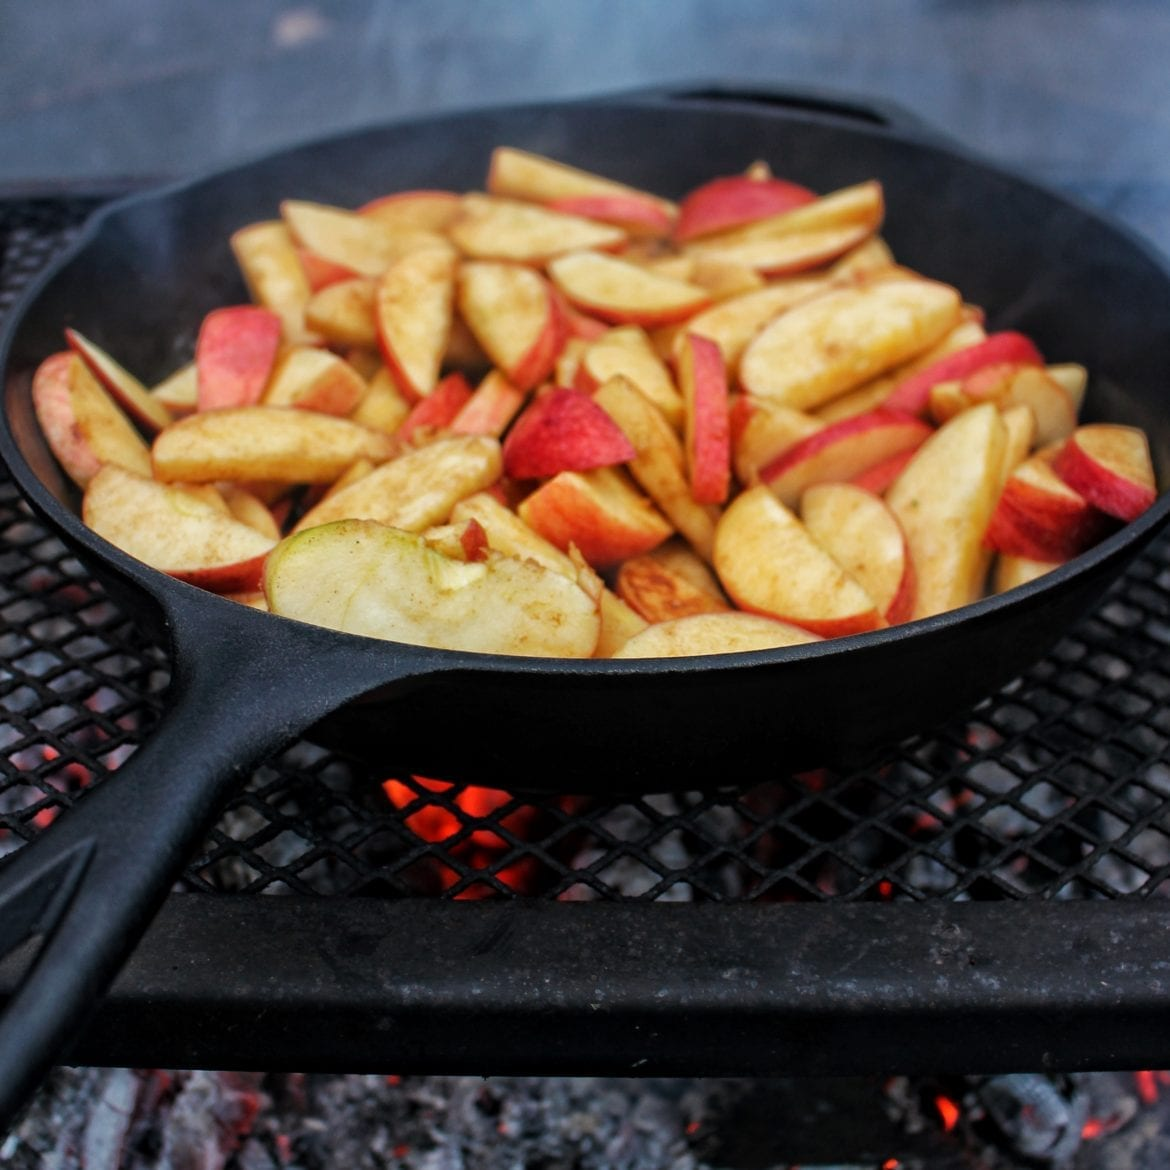 Apples sautéing over the fire